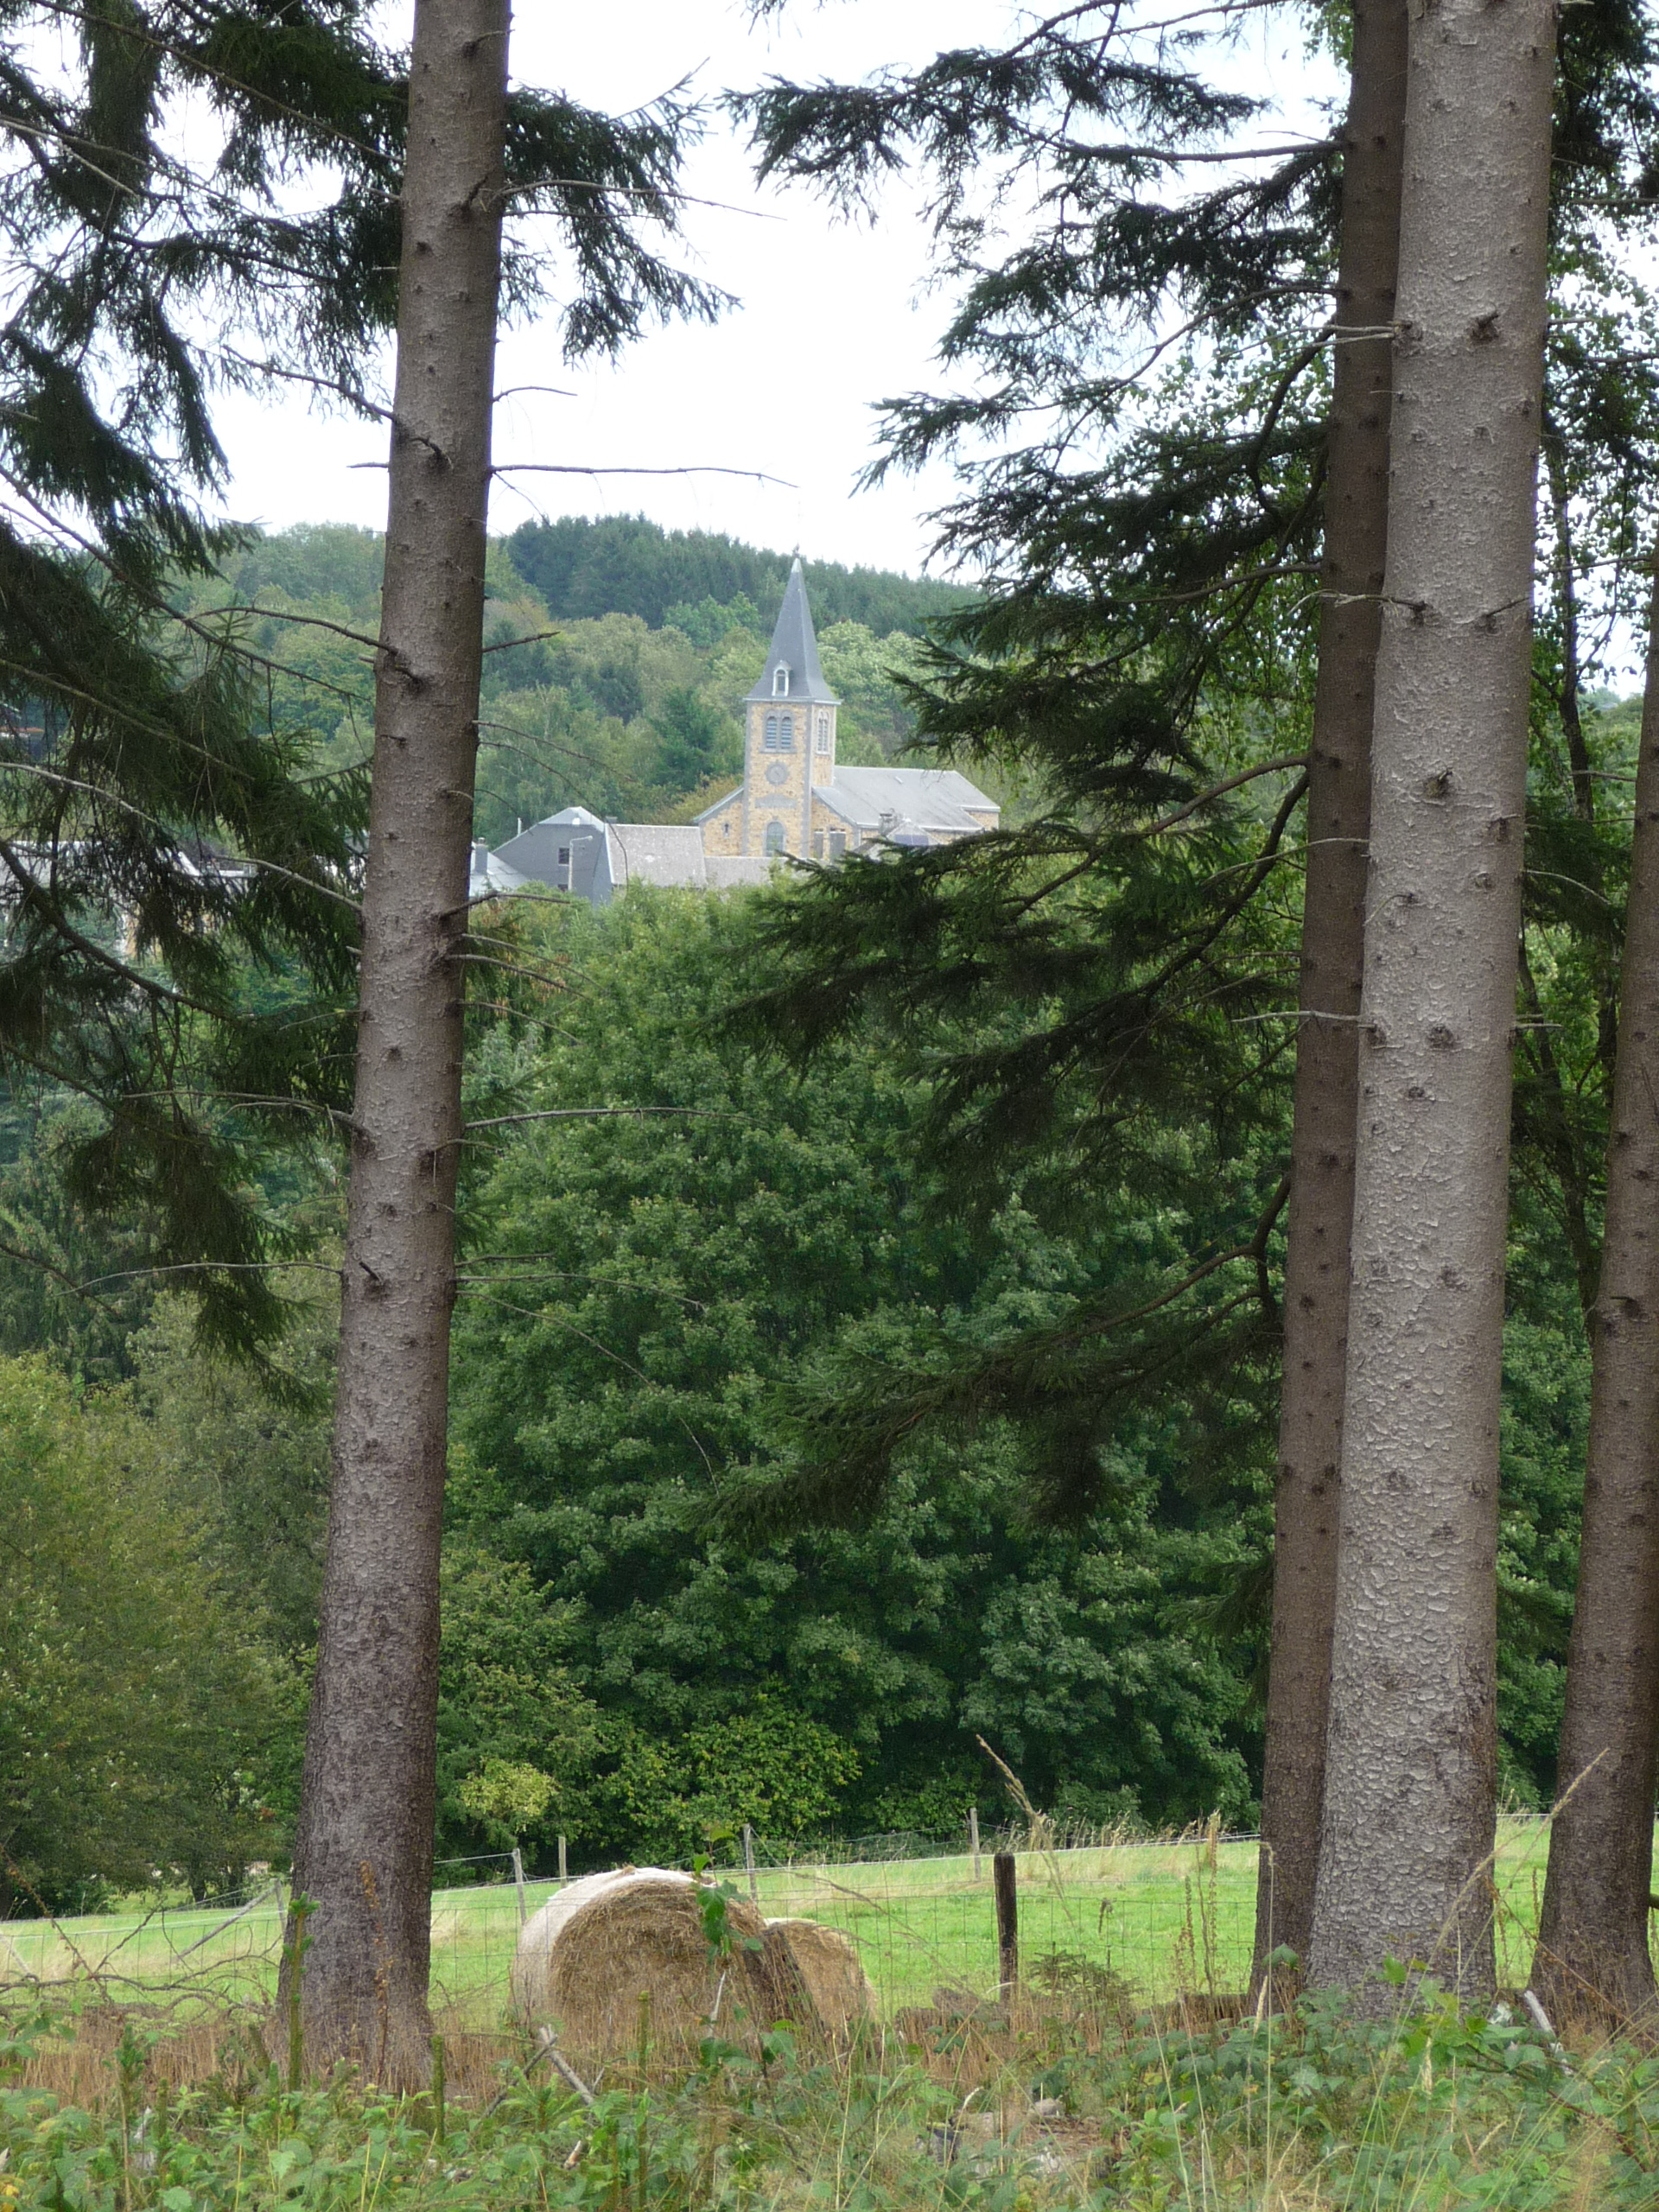 Ardennes village glimpsed through the trees